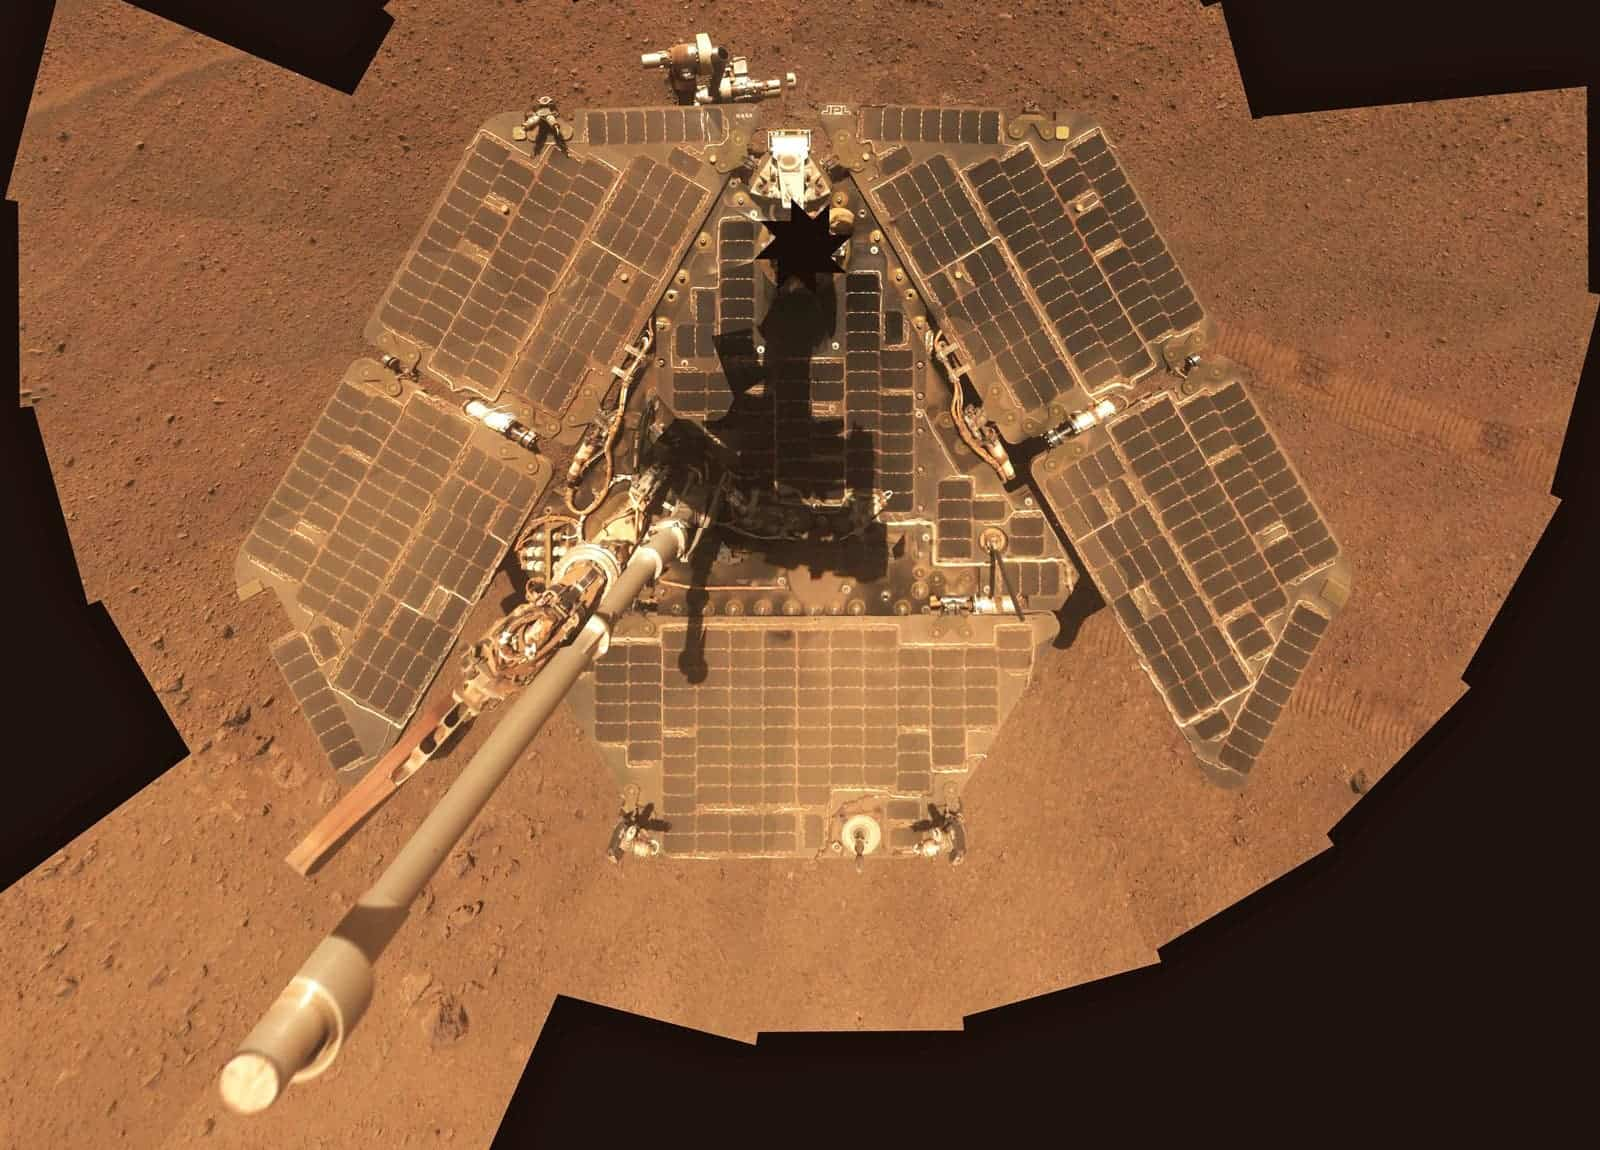 Opportunity rover goes dark during Mars dust storm